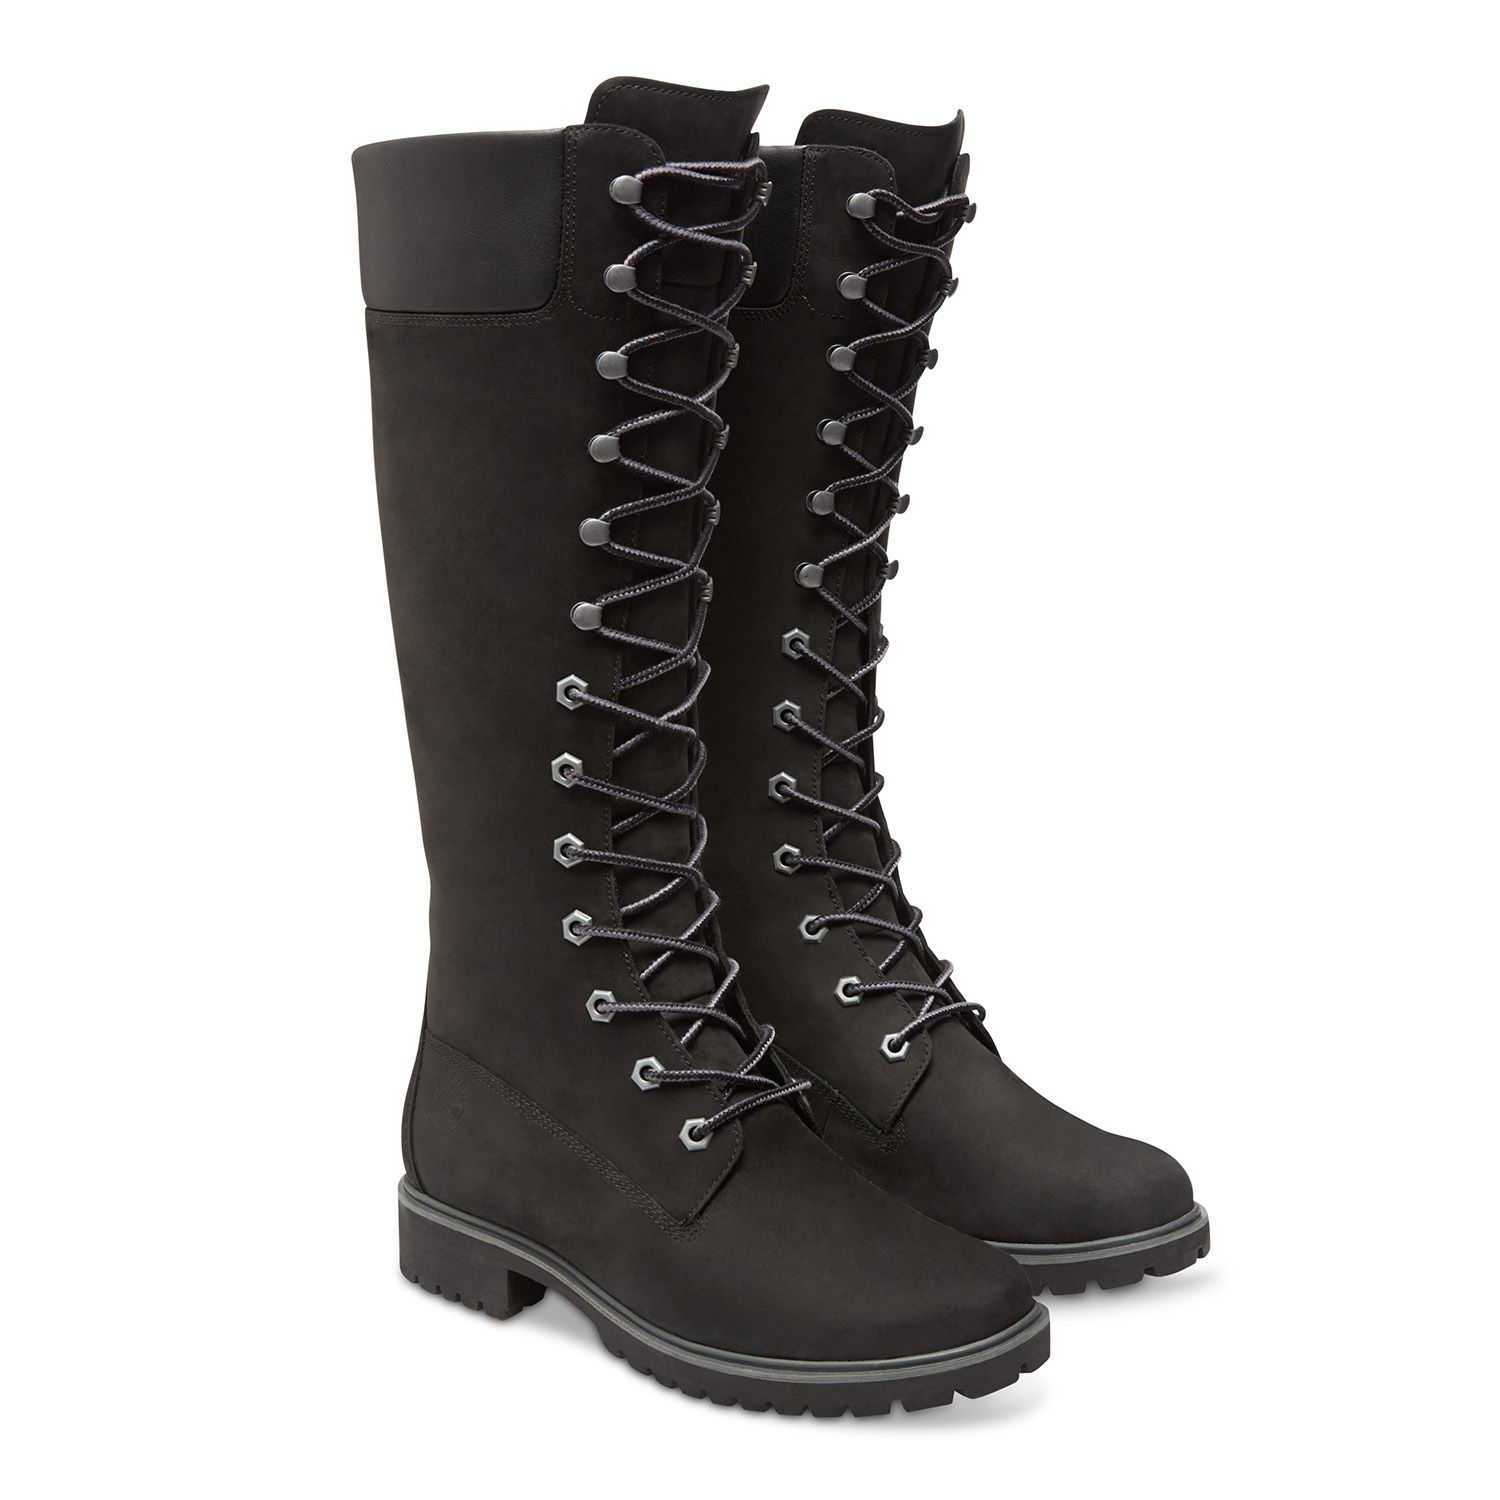 Latest Timberland Black Nubuck 14-Inch Lace-Up Leather Boots for Women Online Sale